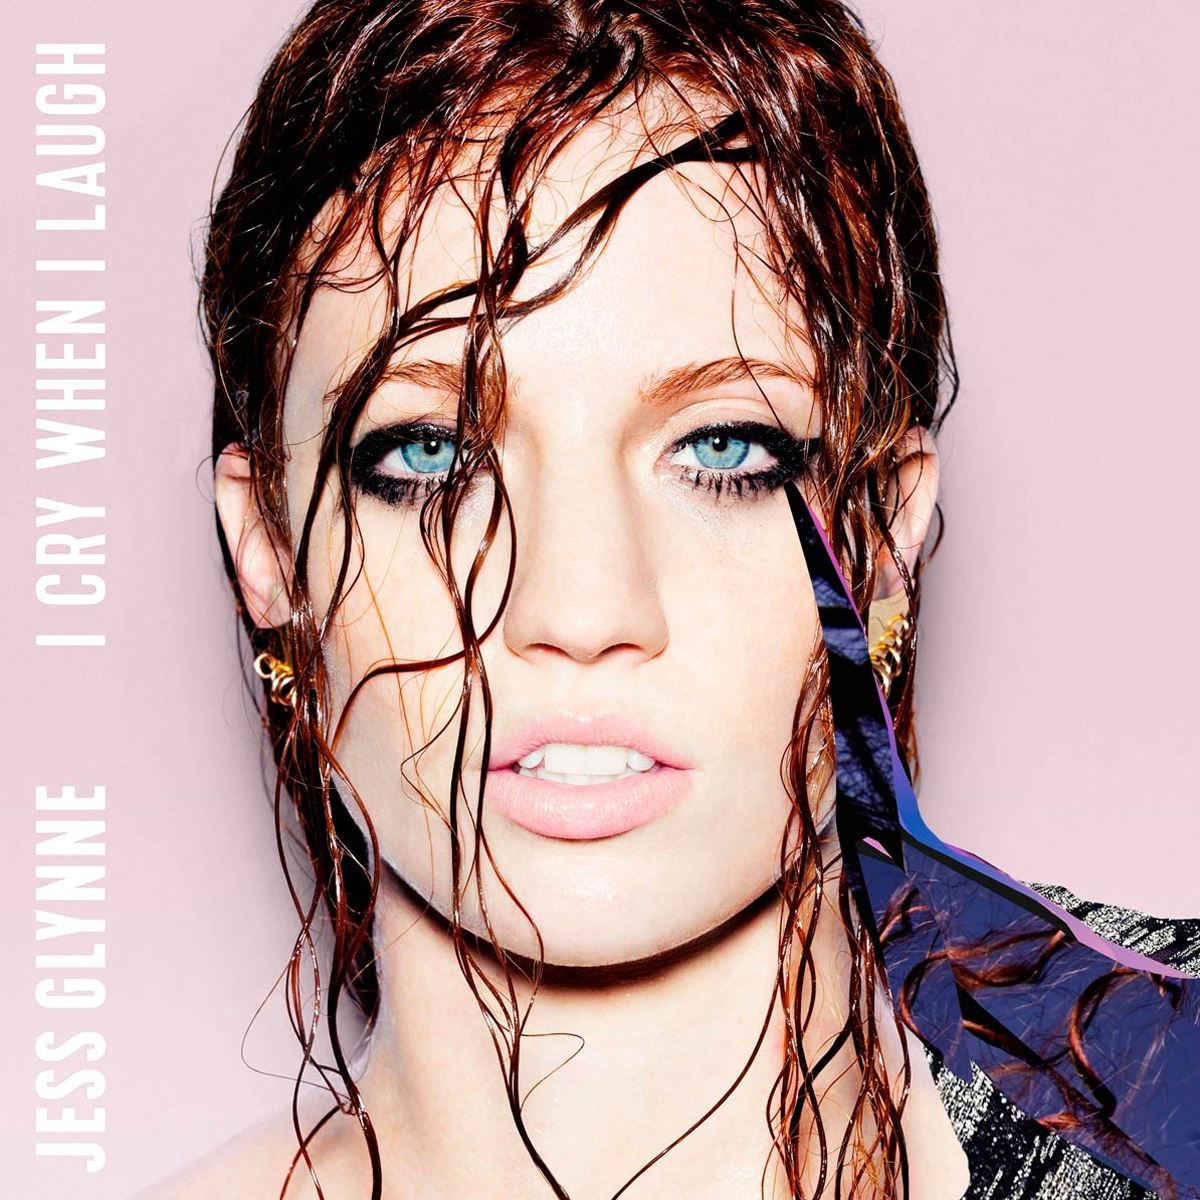 CD Jess Glynne-I Cry When I Laugh